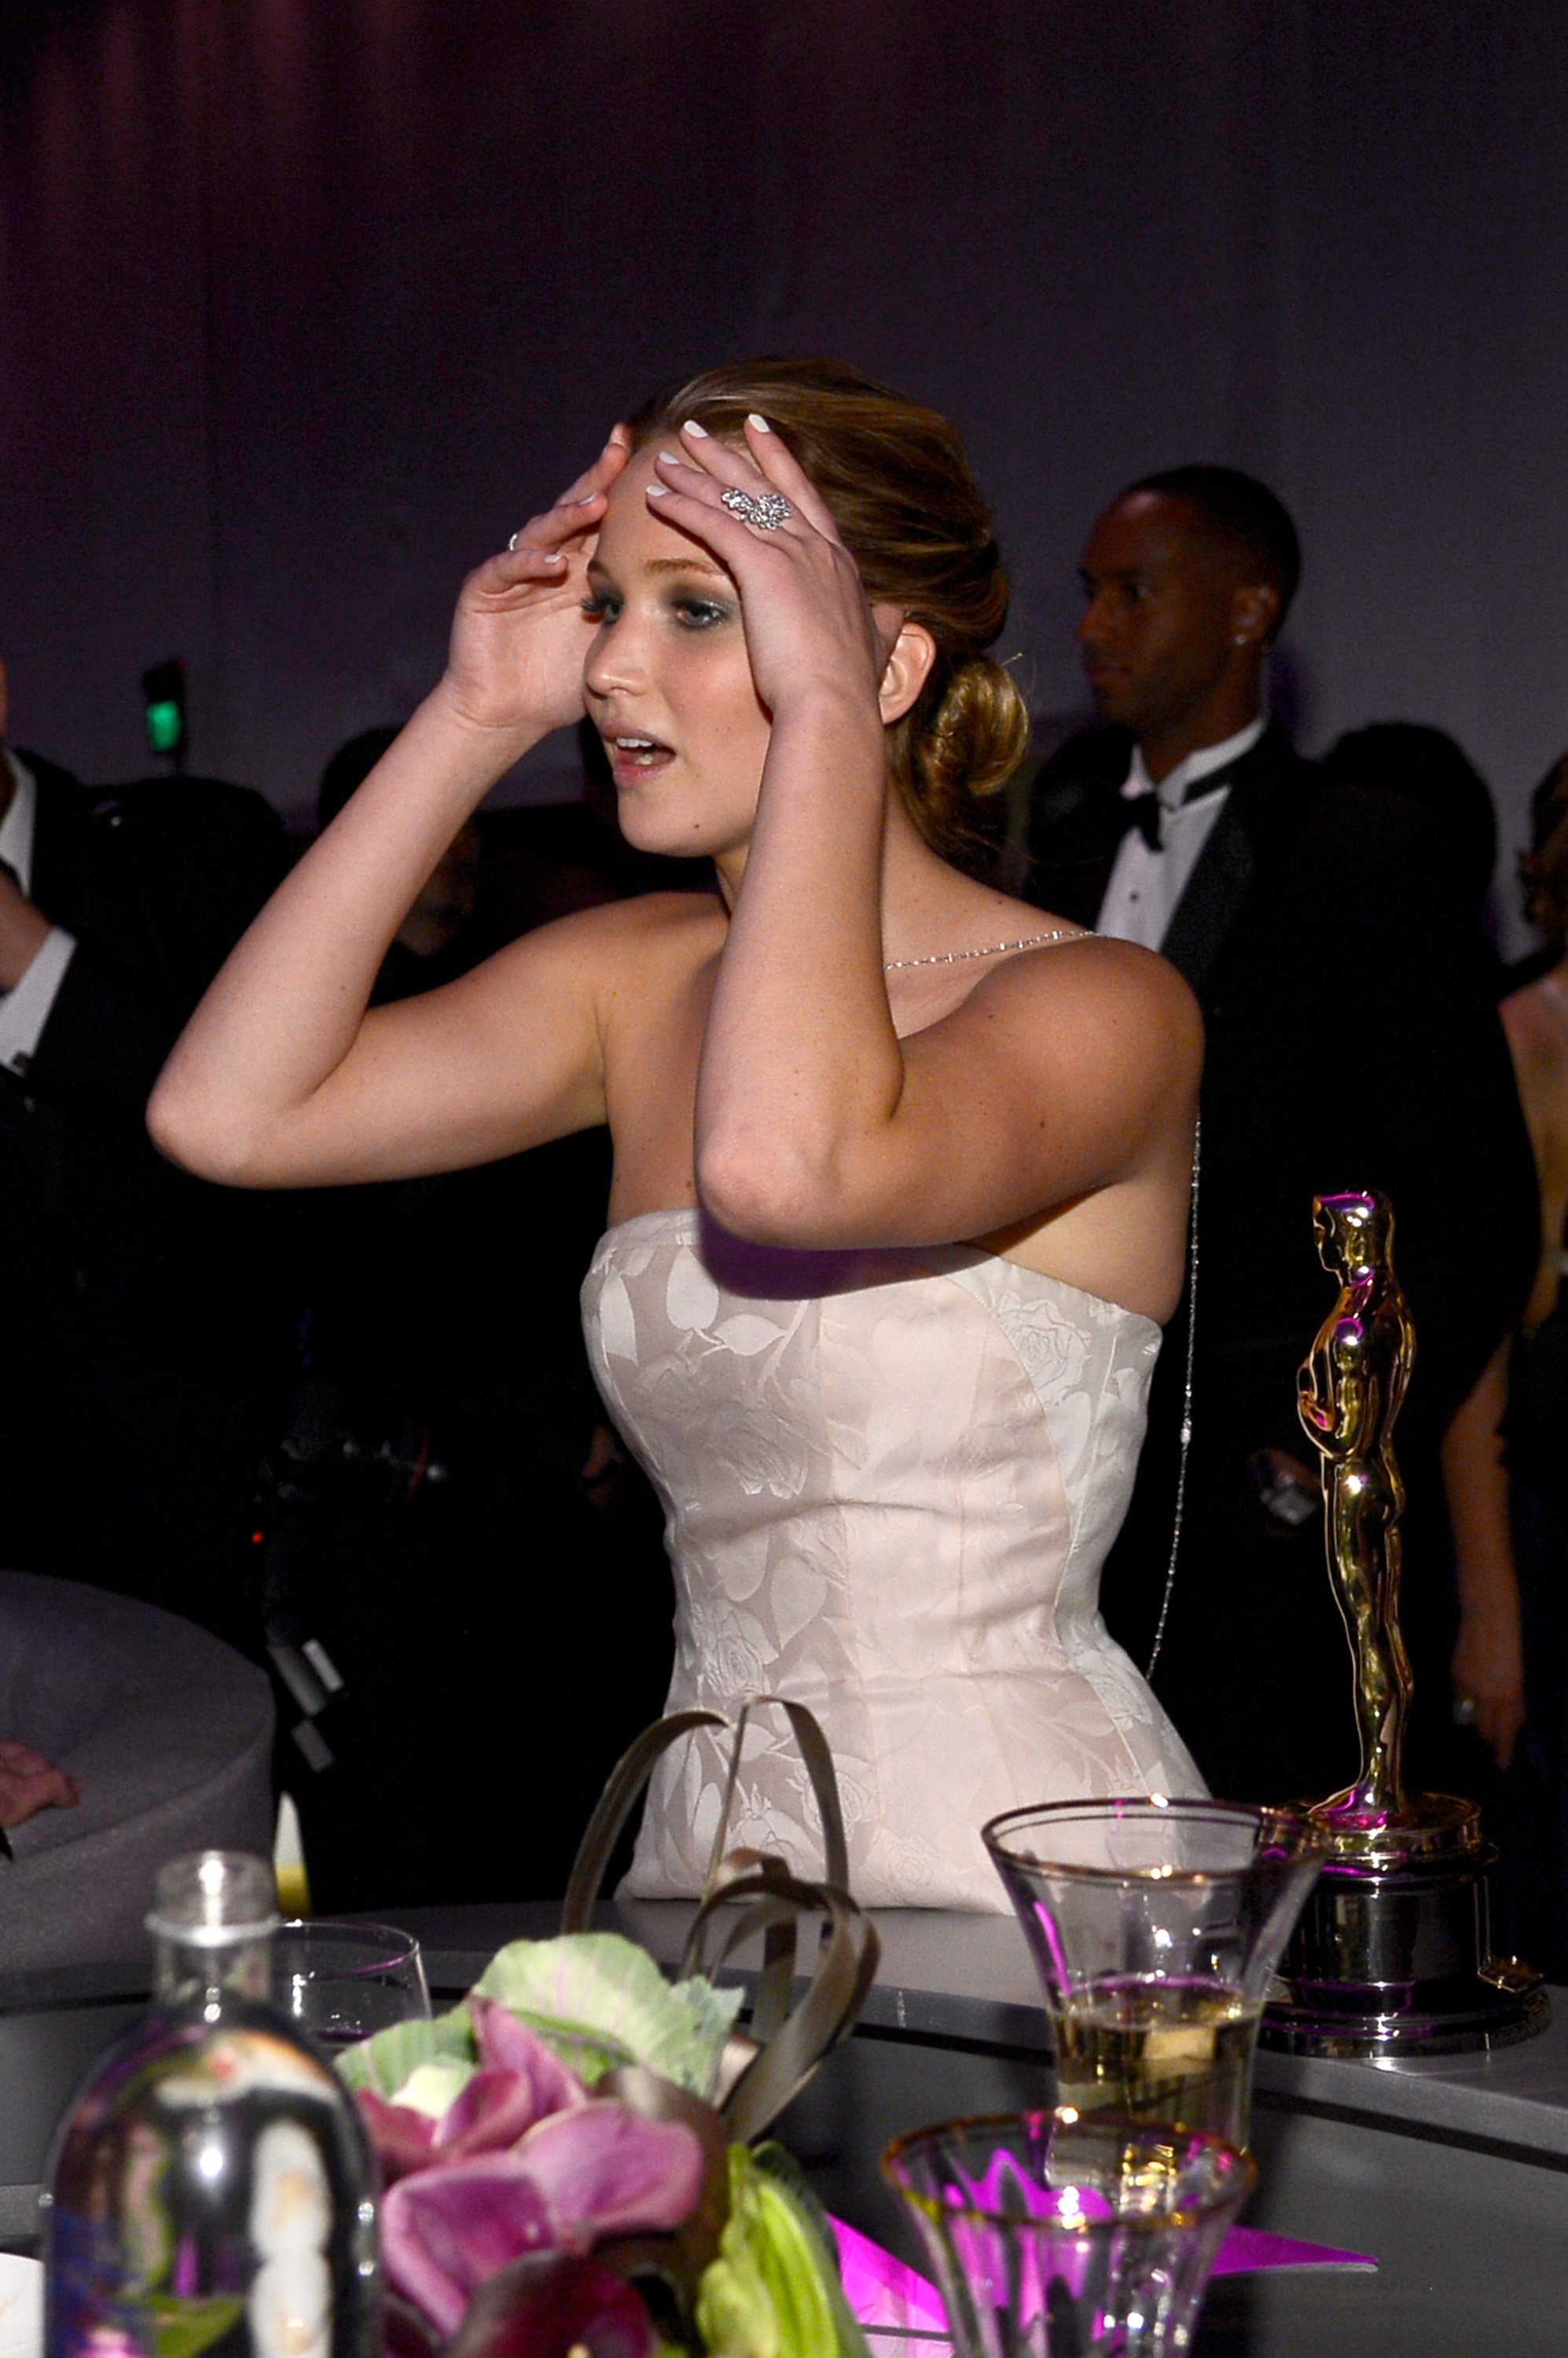 Jennifer Lawrence attends the Oscars Governors Ball in Hollywood, California on February 24, 2013 | Photo: Getty Images